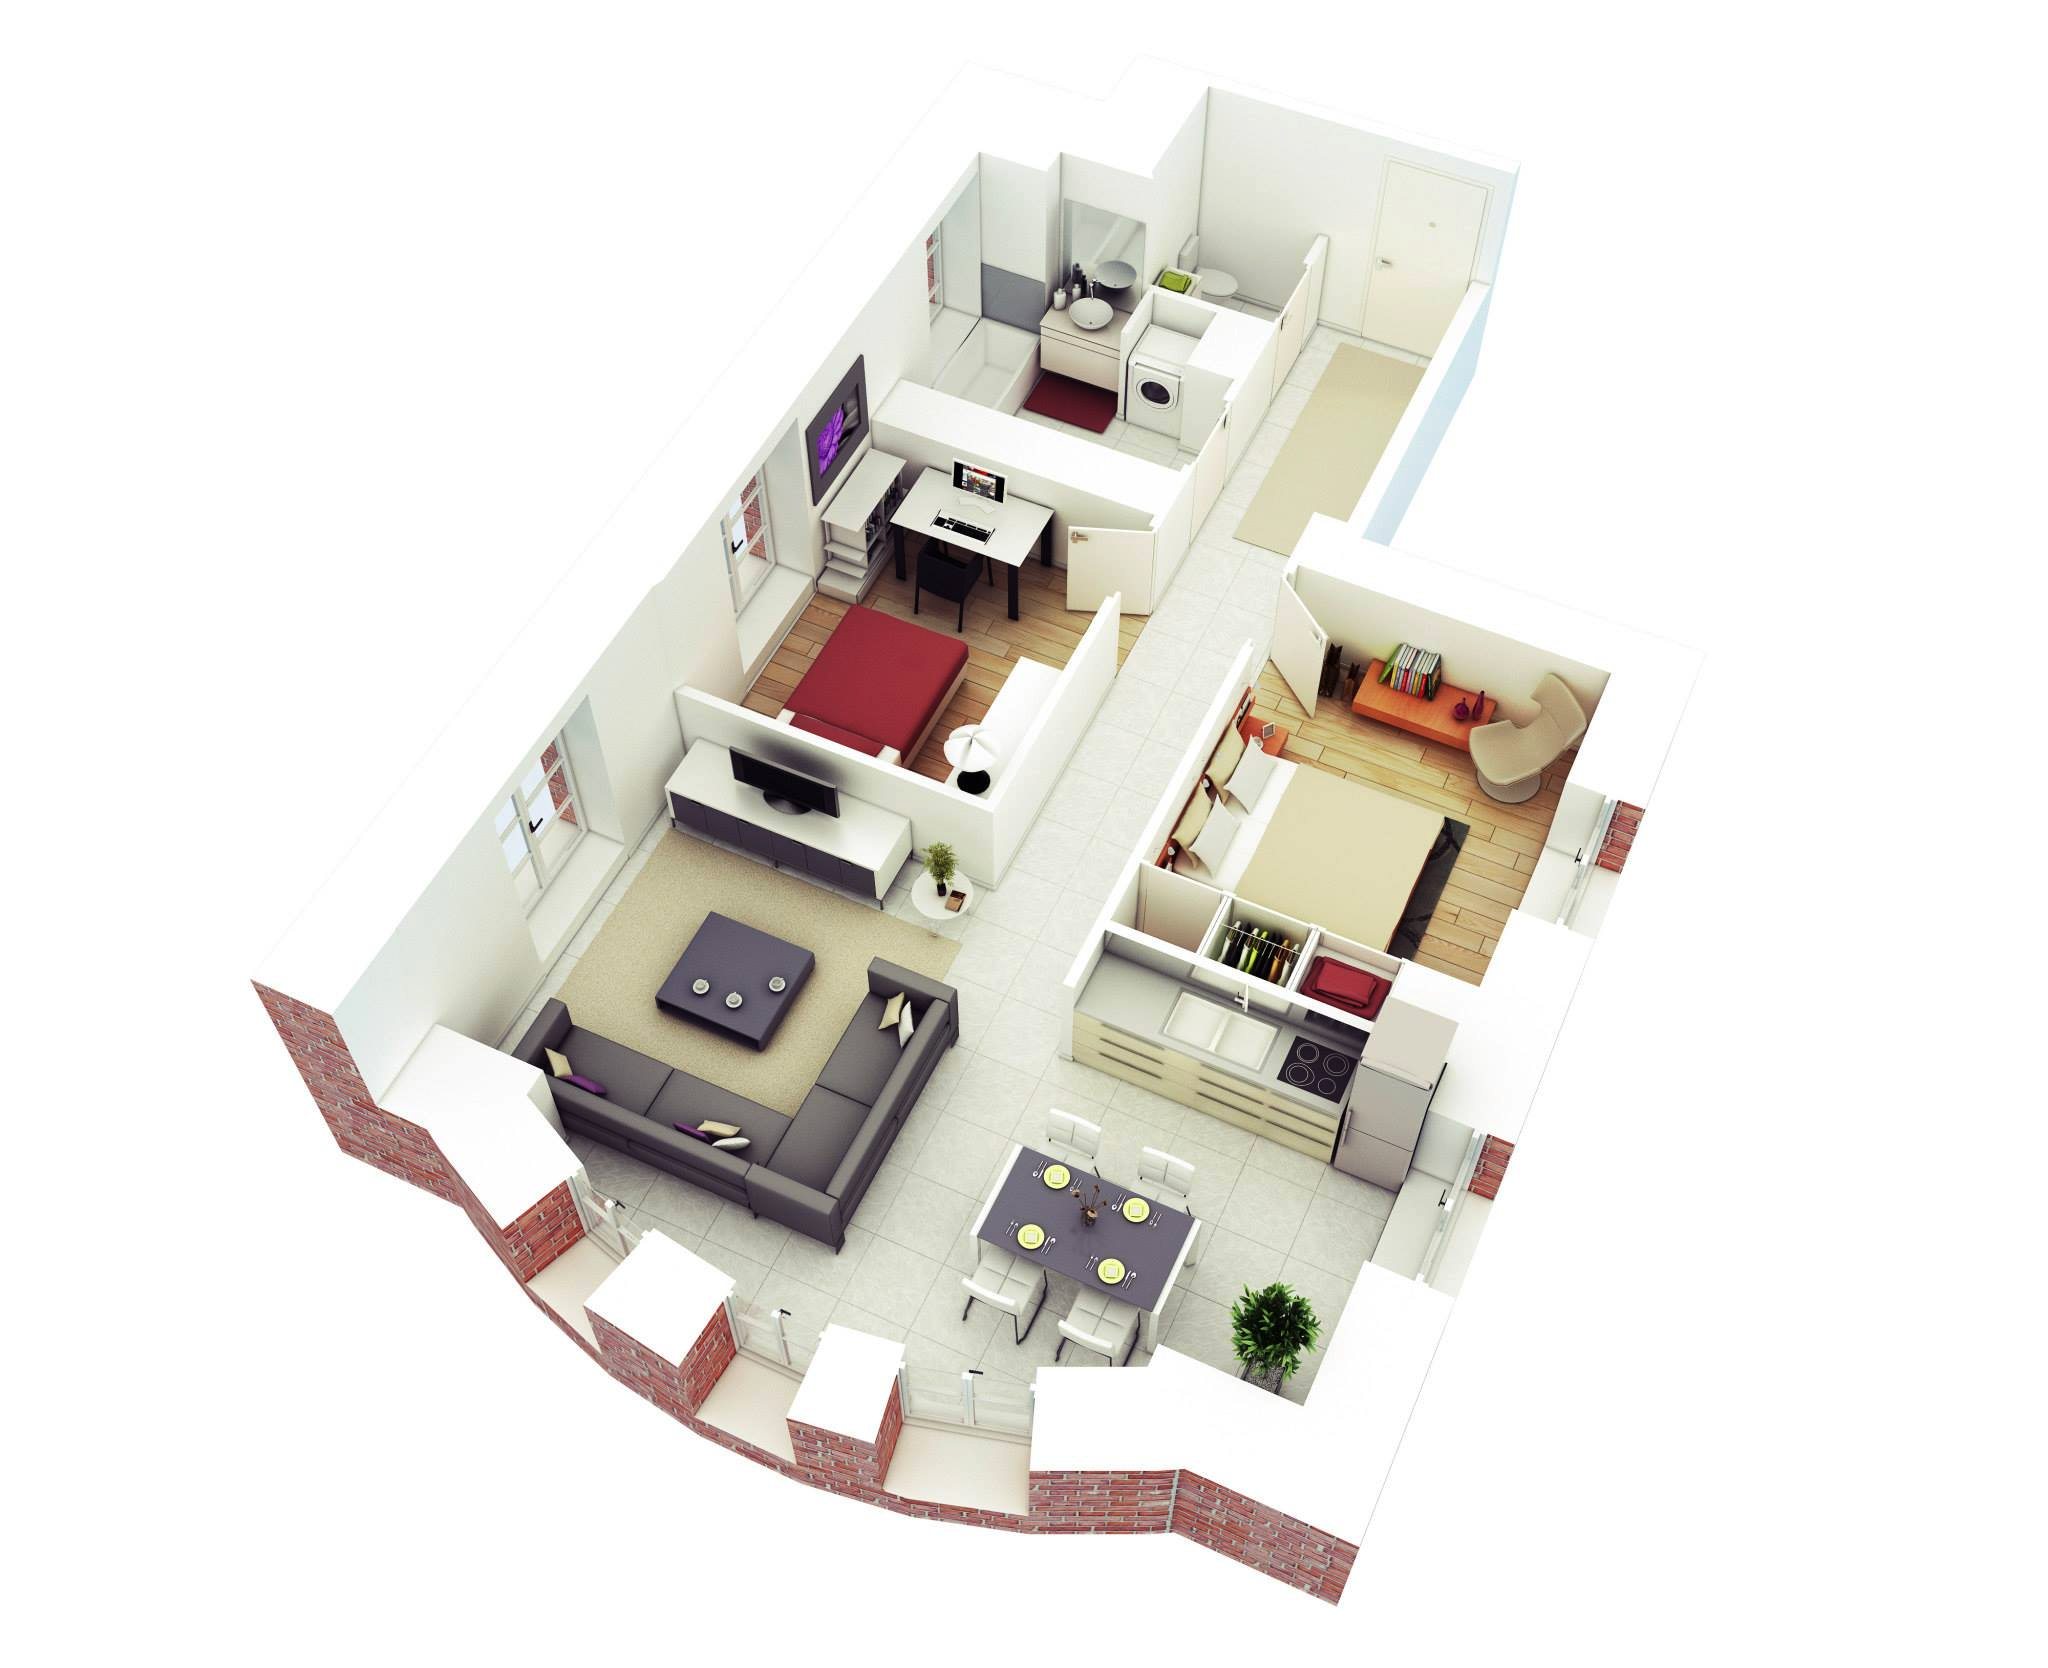 25 more 2 bedroom 3d floor plans - 3d Plan House